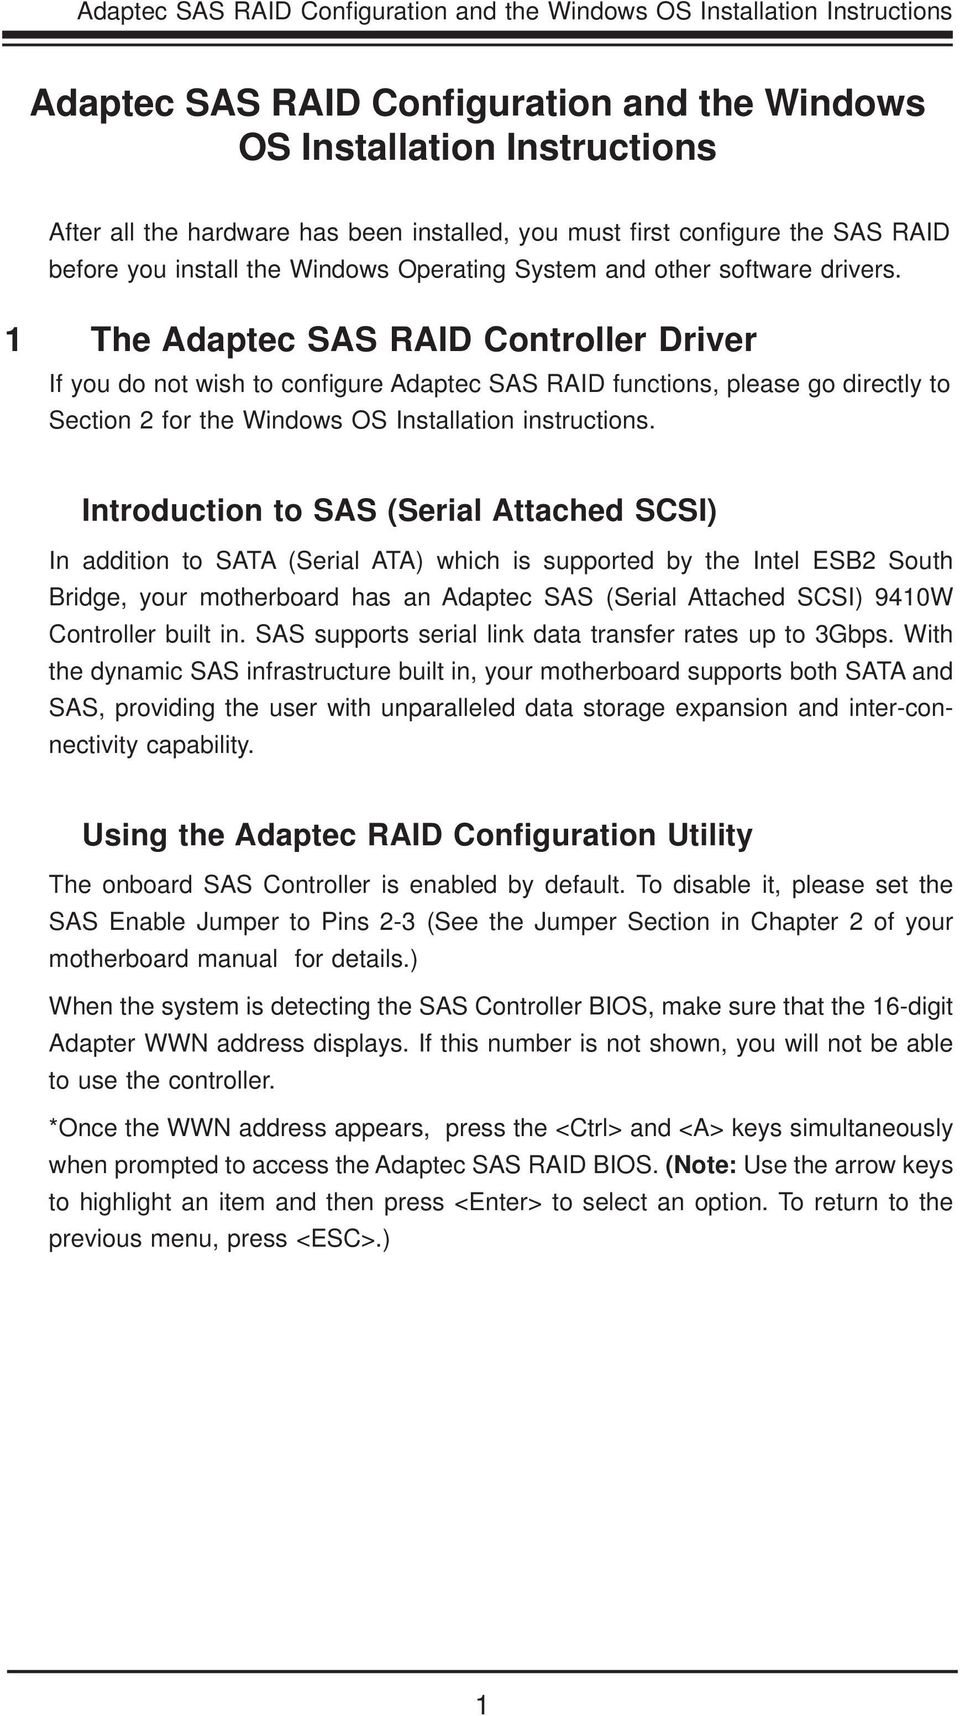 1 The Adaptec SAS RAID Controller Driver If you do not wish to confi gure Adaptec SAS RAID functions, please go directly to Section 2 for the Windows OS Installation instructions.